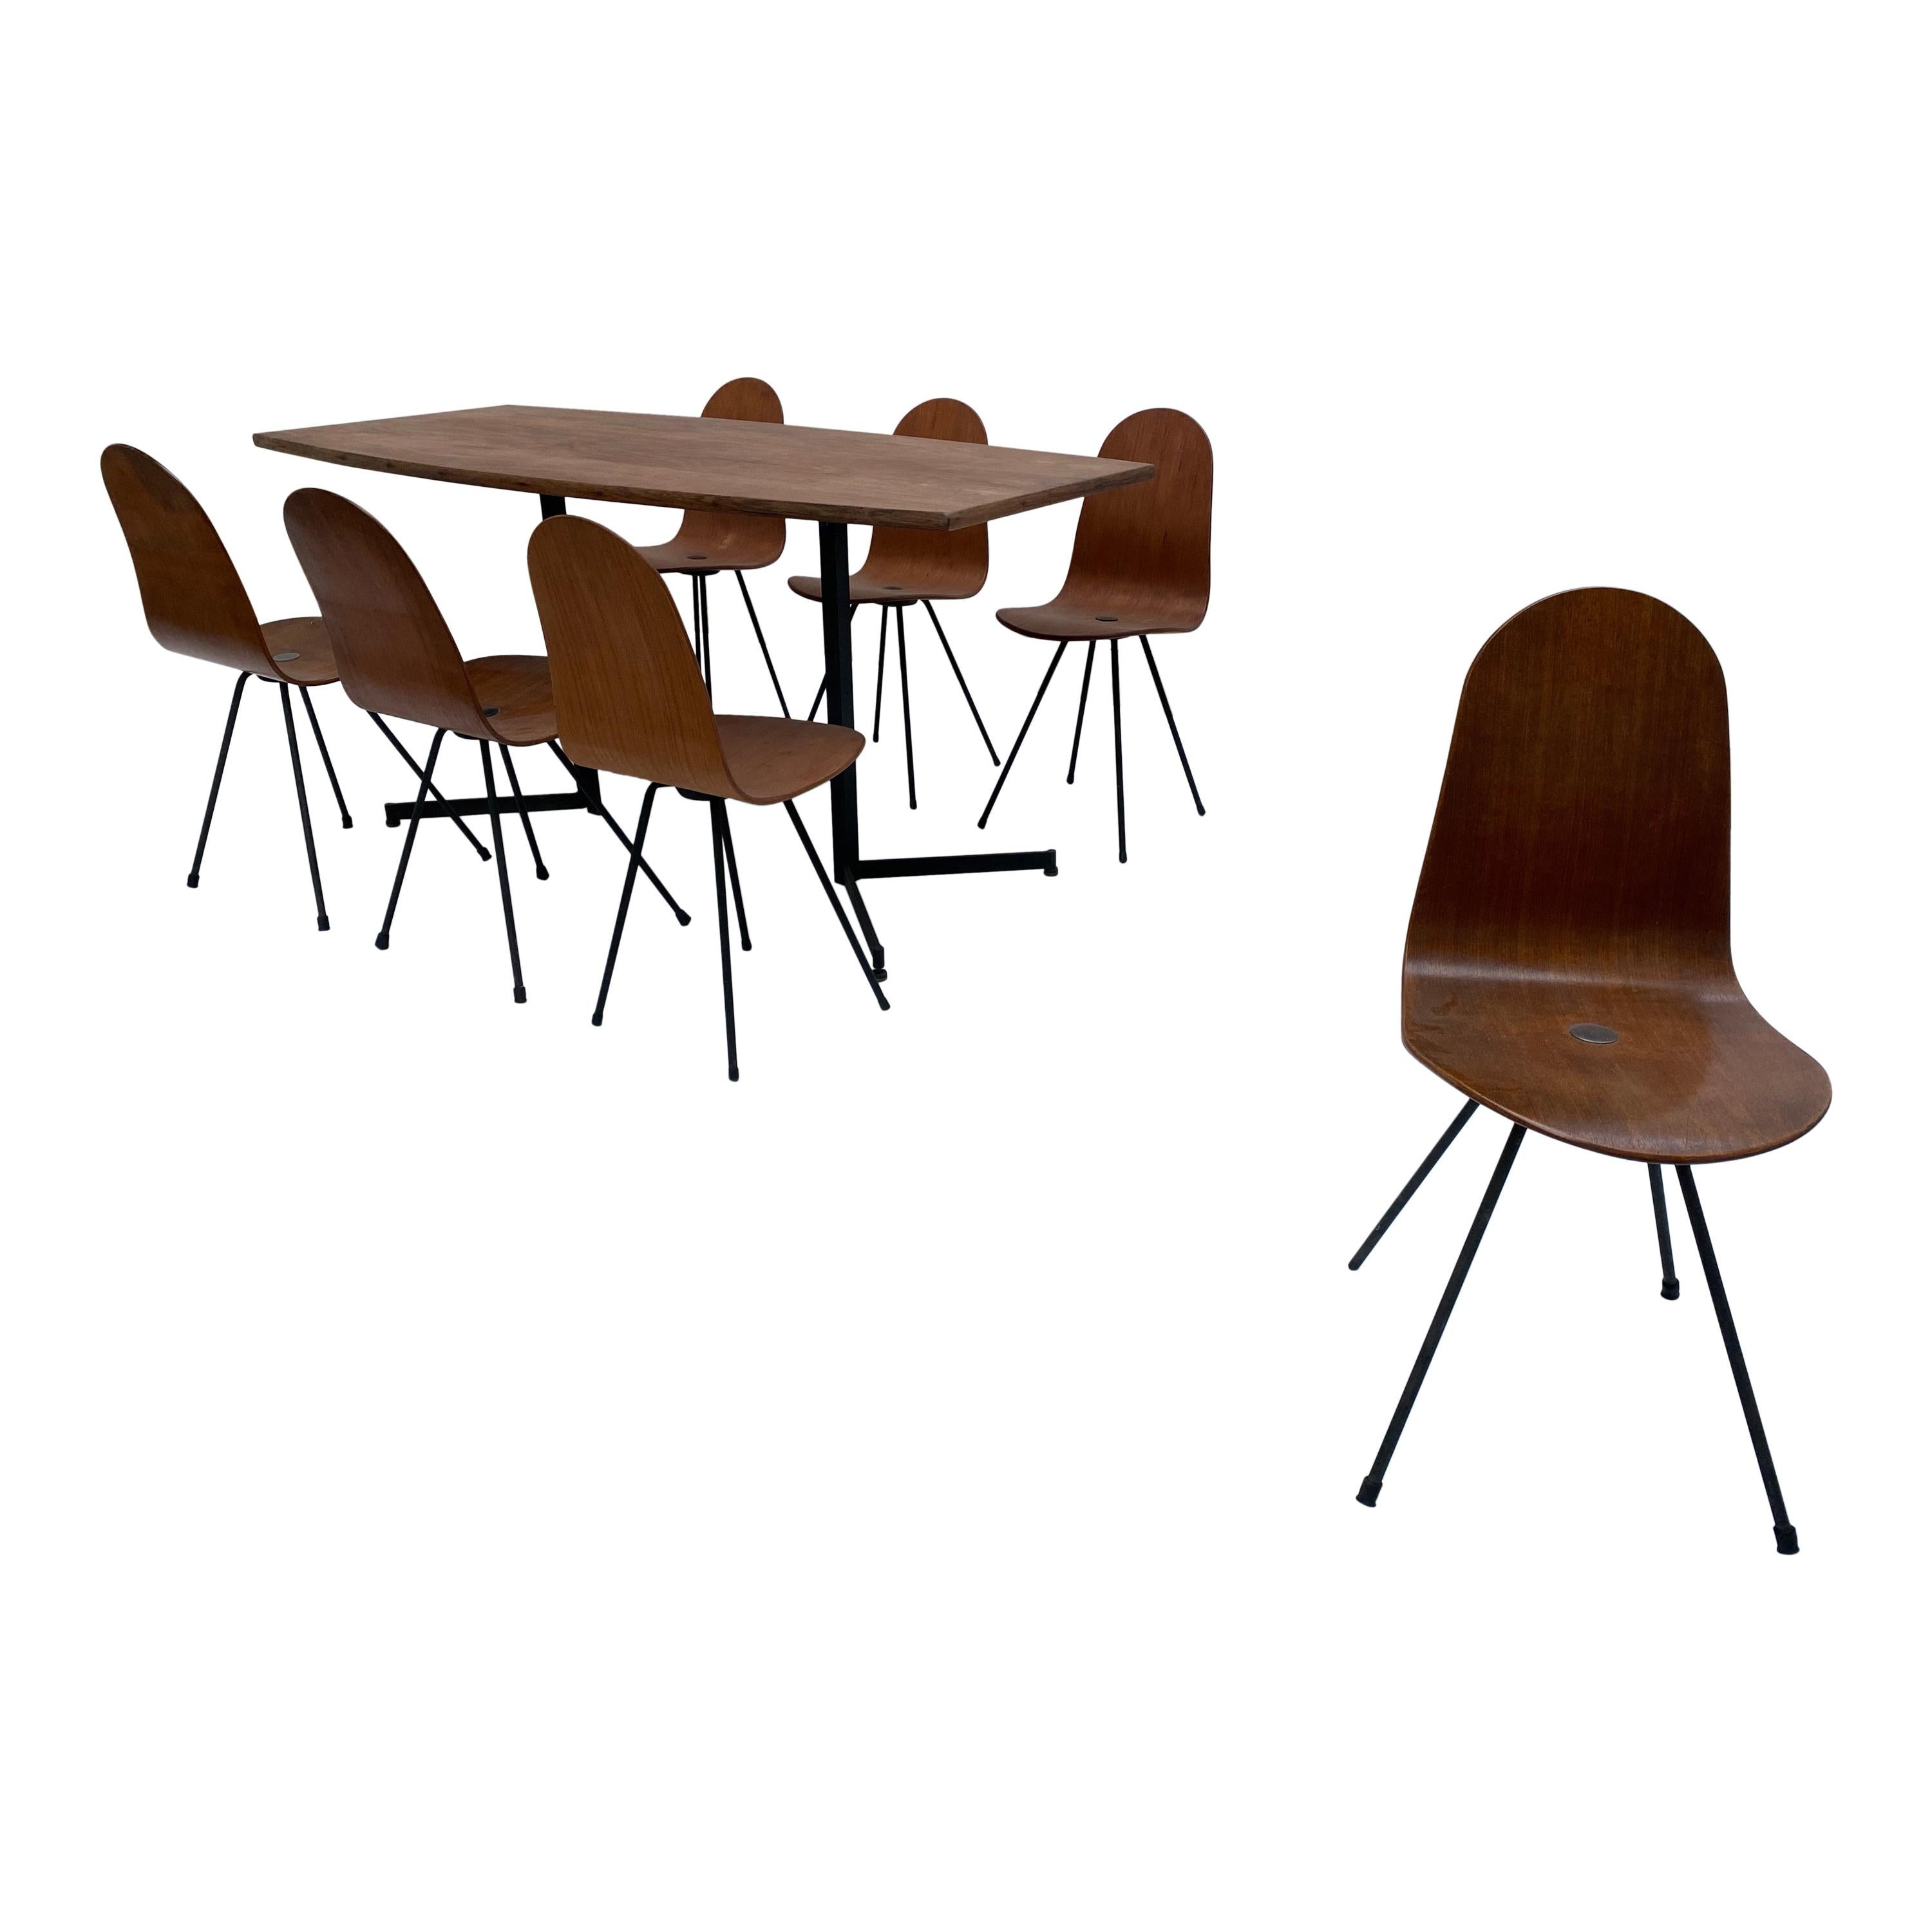 Campo & Graffi Dining Set Comprising 6 Chairs & Matching Table, 1958, published